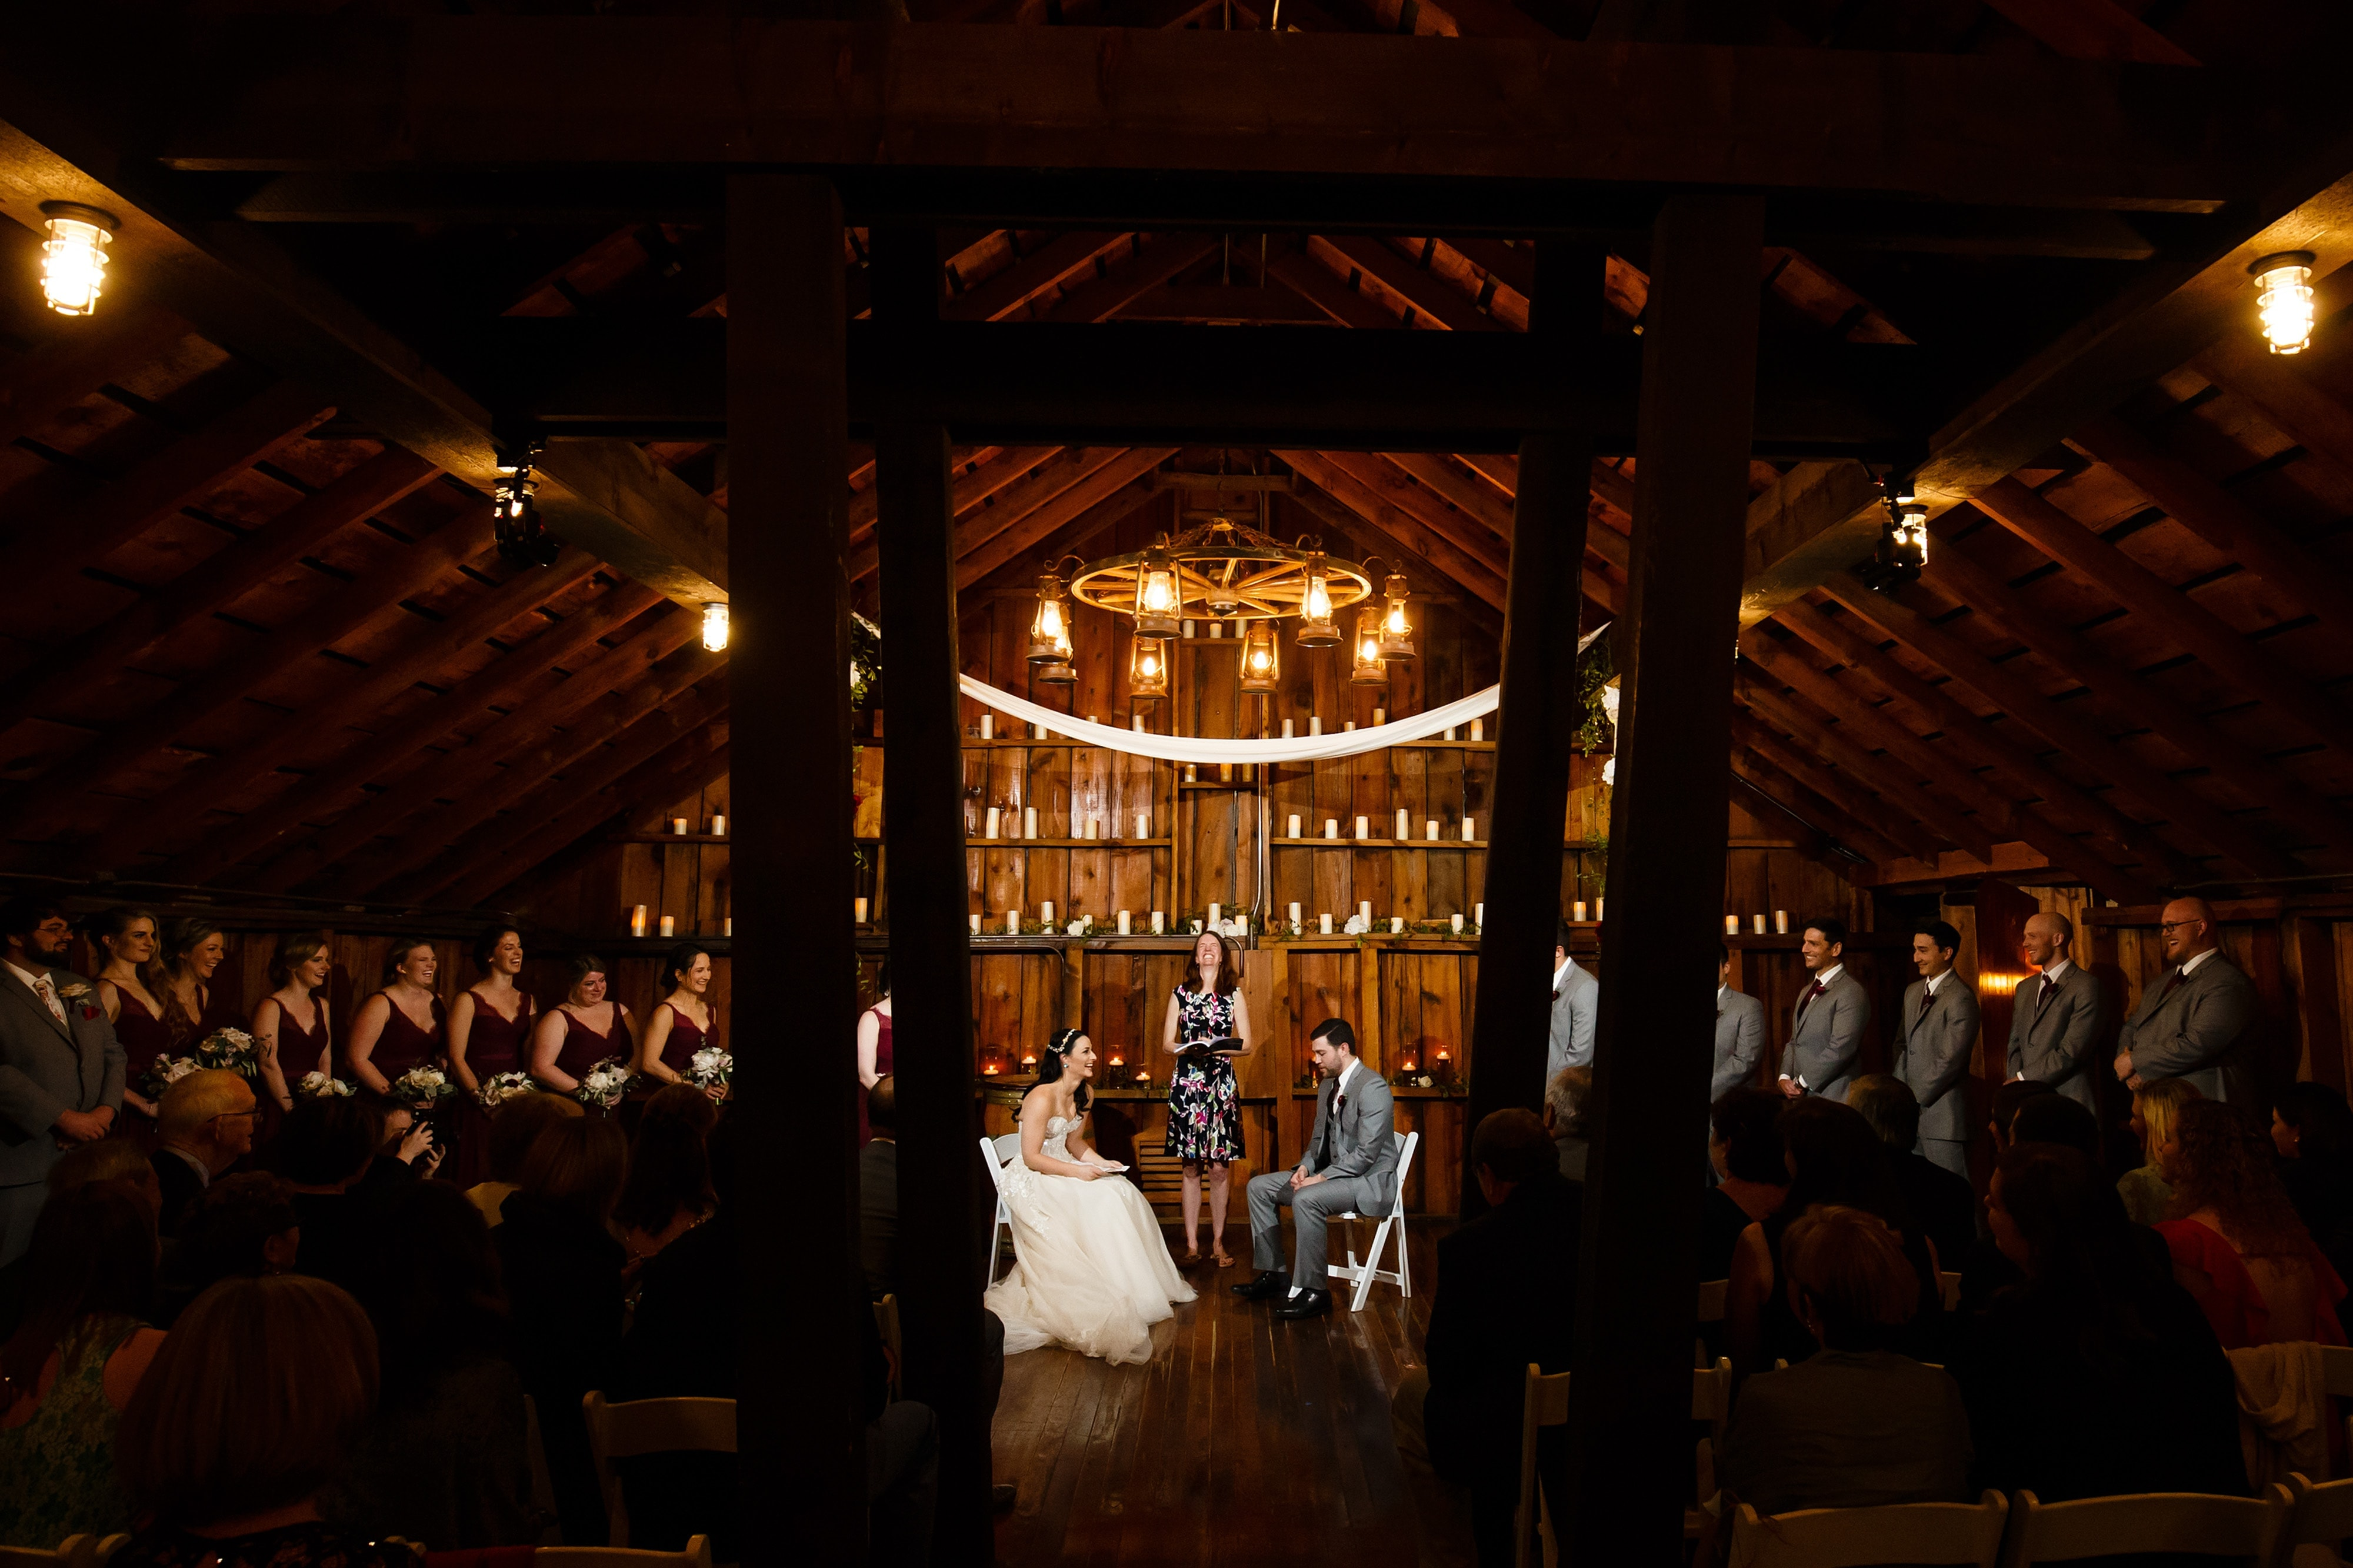 Danielle and Jordan share their vows in Lola's Loft during their ceremony at Crooked Willow Farms in Larkspur, Colorado